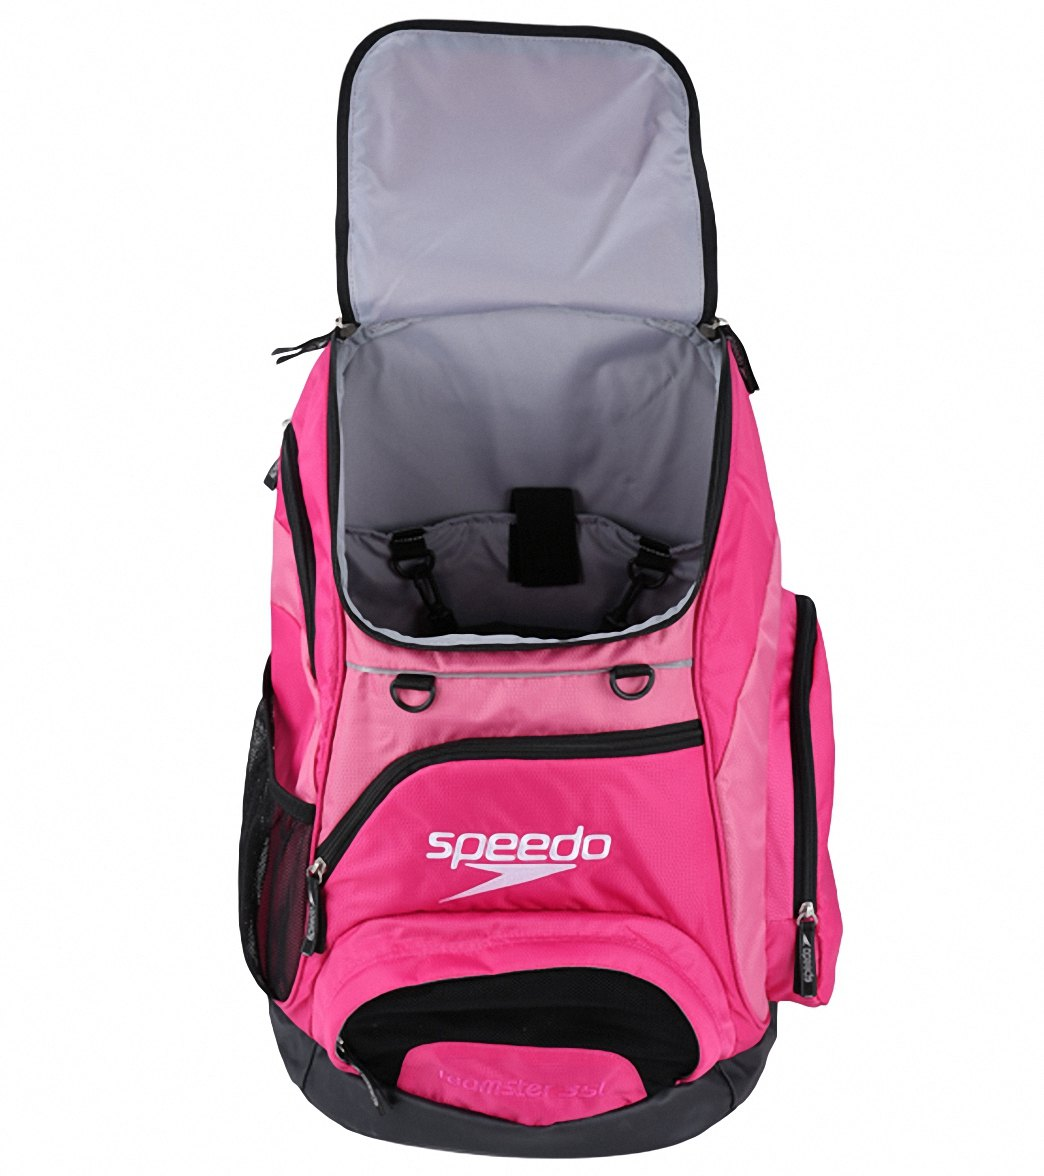 Speedo Large 35L Teamster Backpack at SwimOutlet.com - Free Shipping eee0641c58d6b